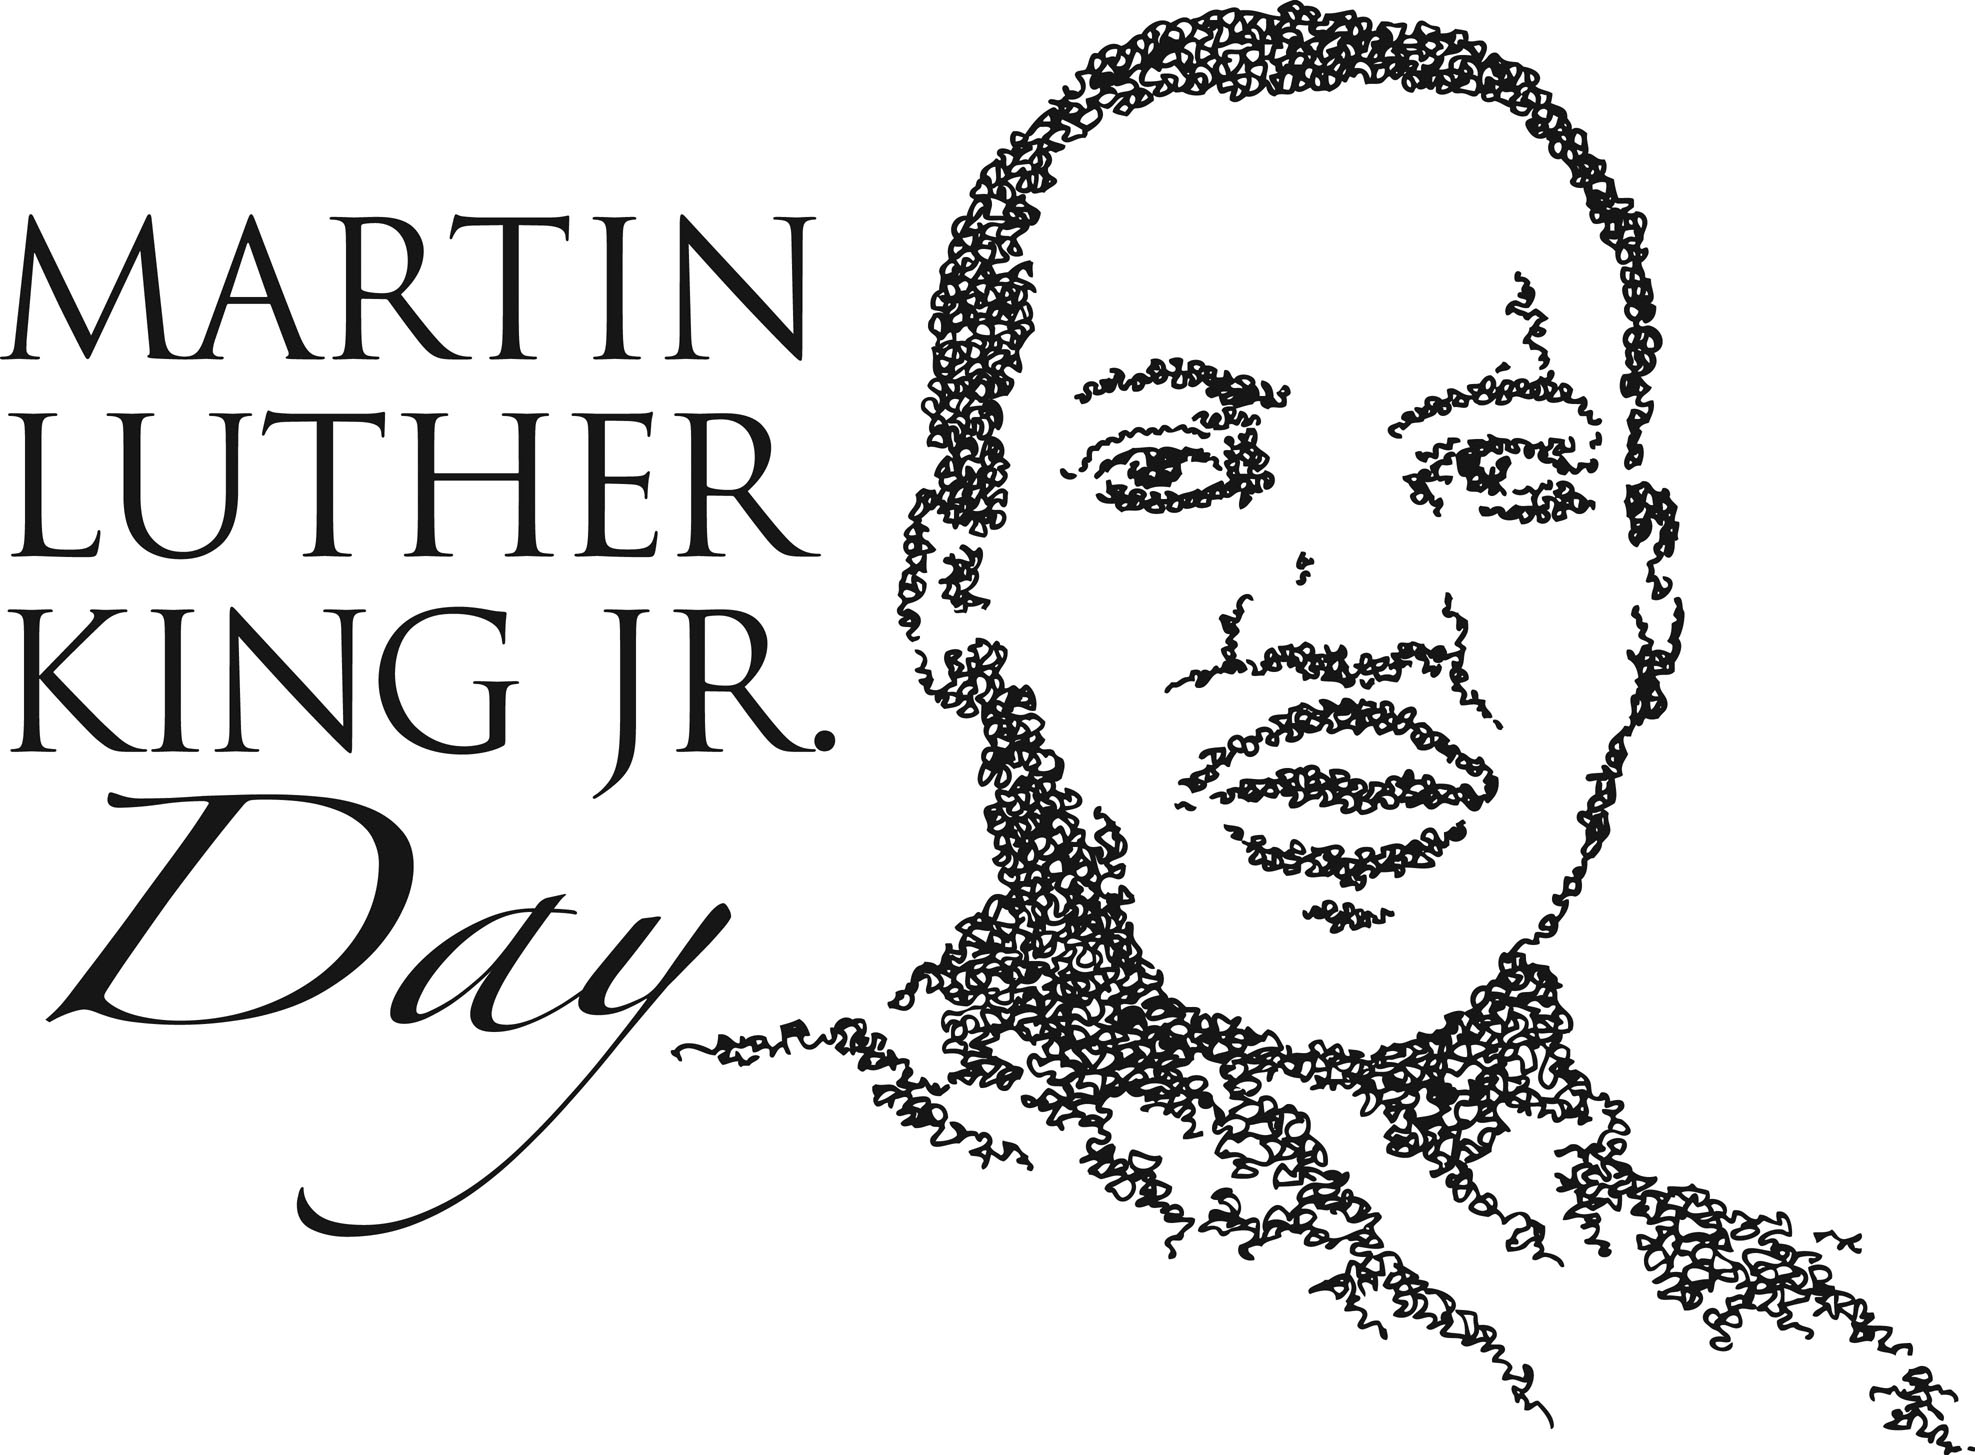 martin luther king jr day clipart mlkday 7613 dunlap public rh dunlaplibrary org martin luther king jr holiday clipart martin luther king jr clip art images